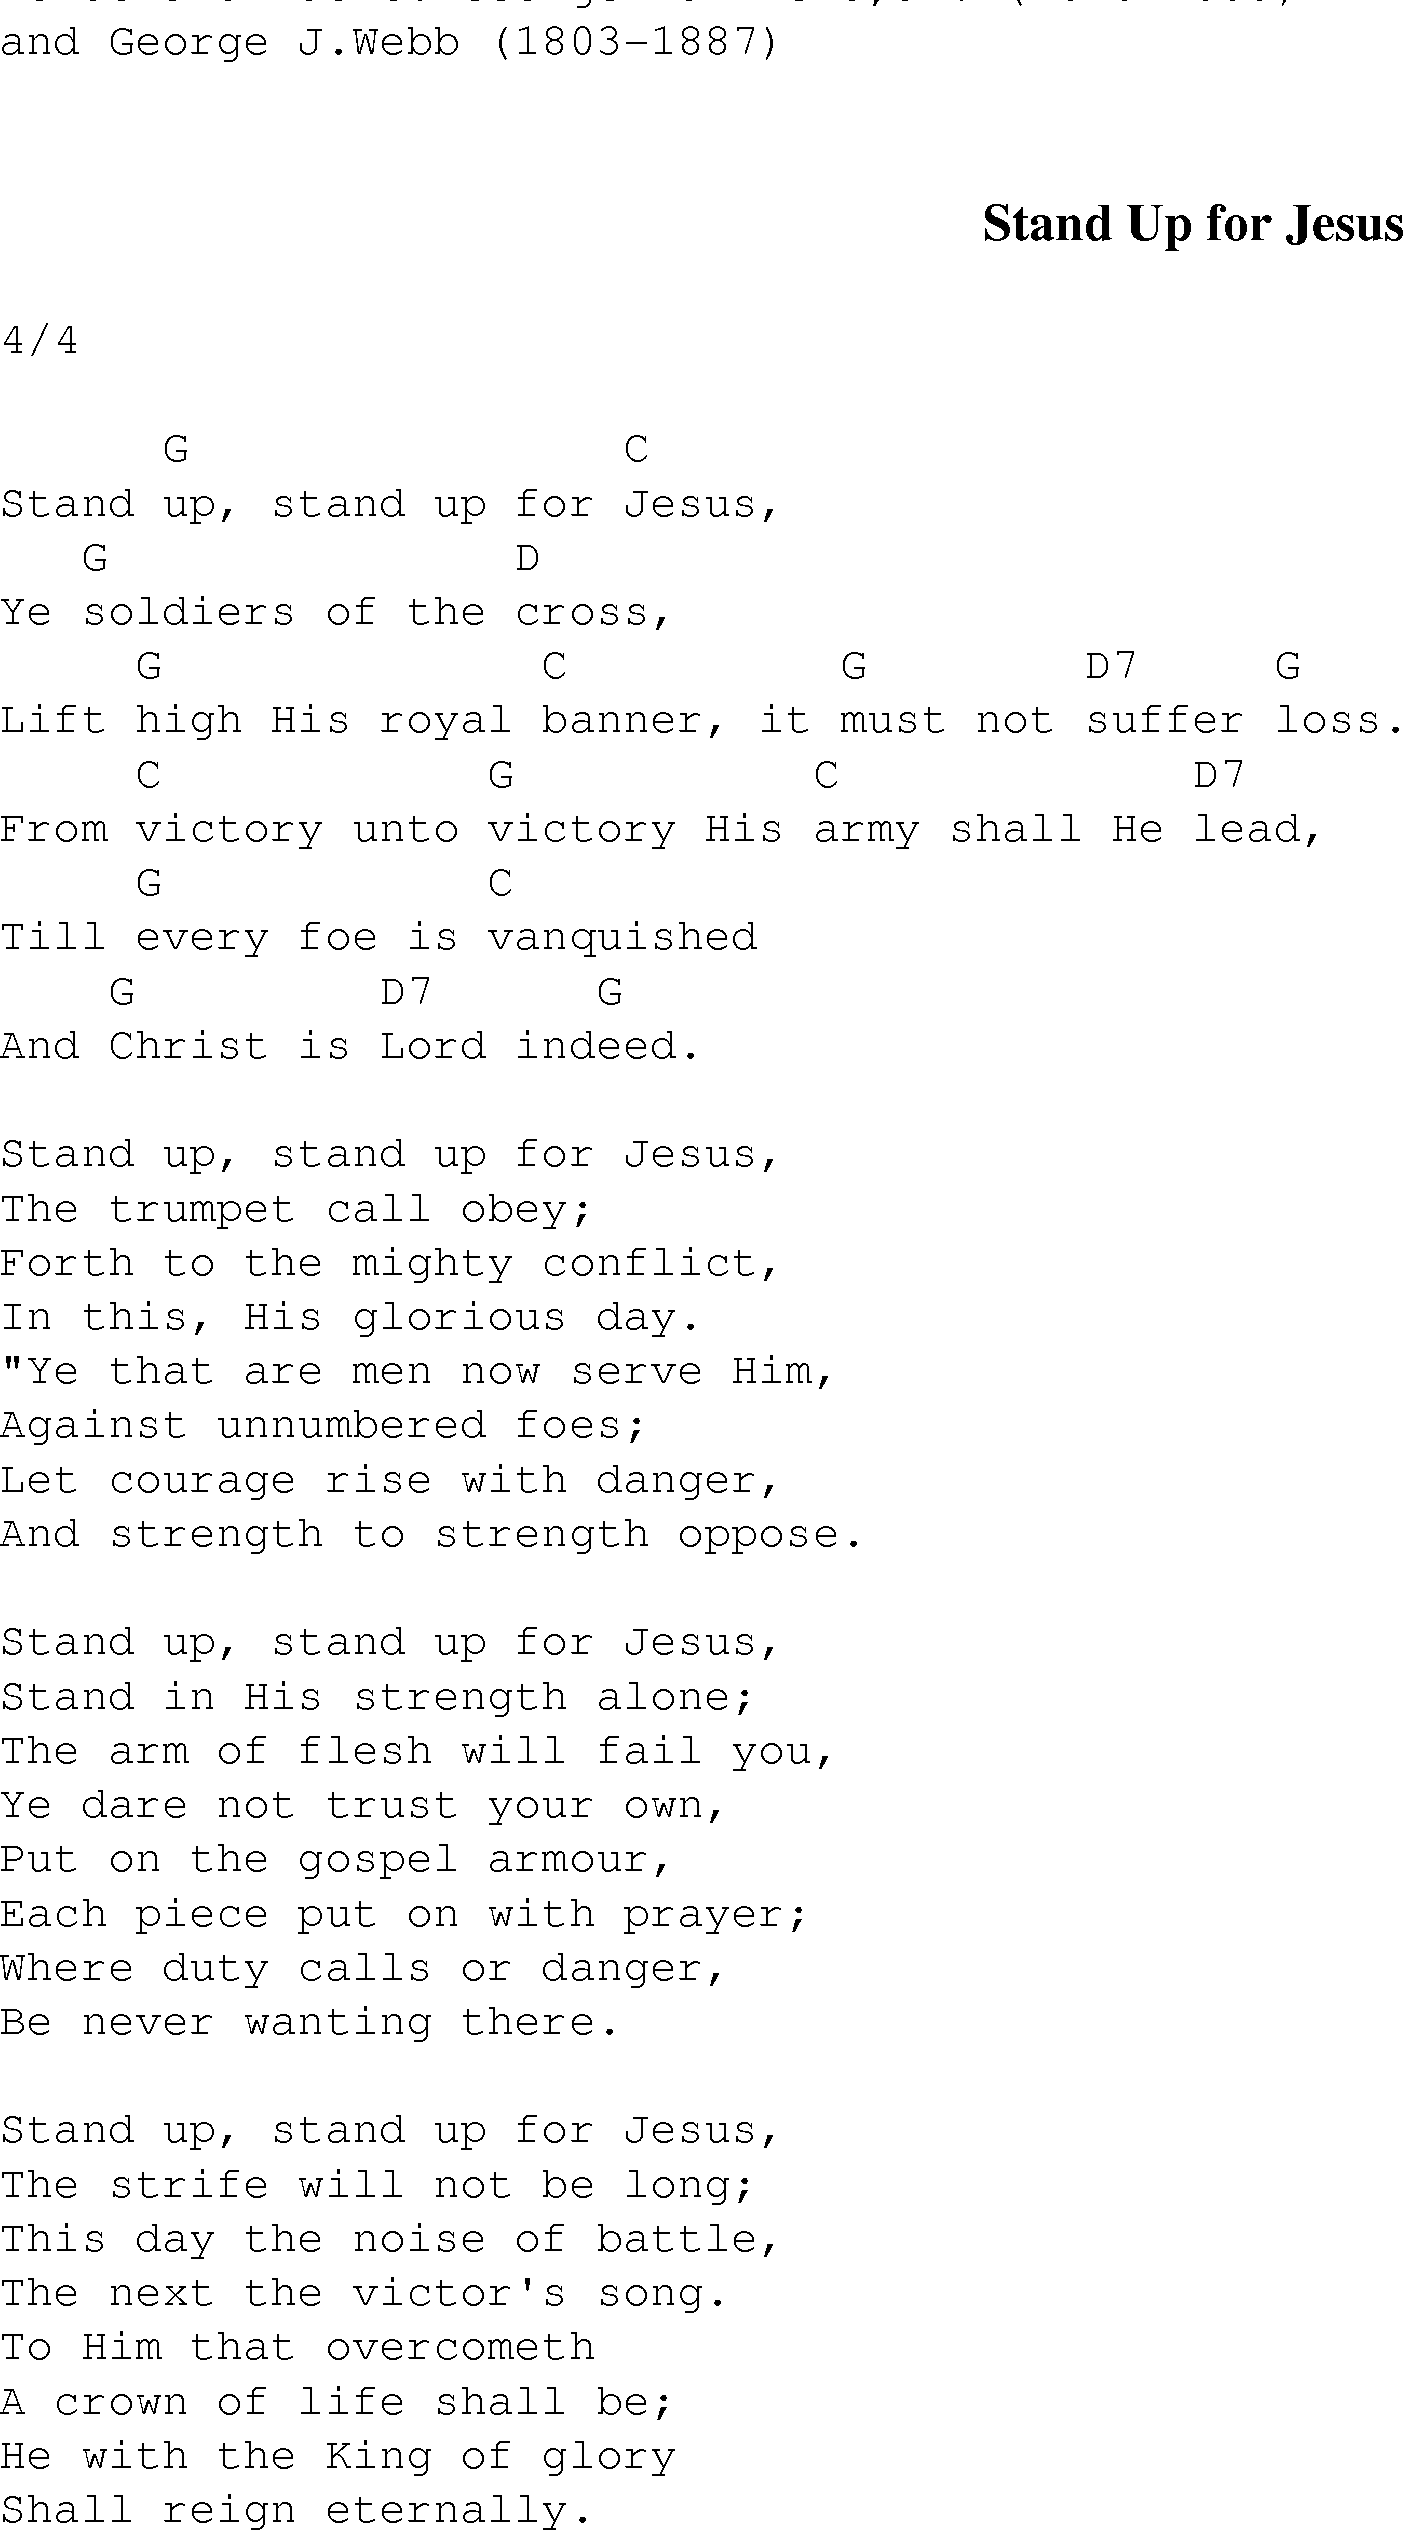 Stand Up For Jesus Christian Gospel Song Lyrics And Chords